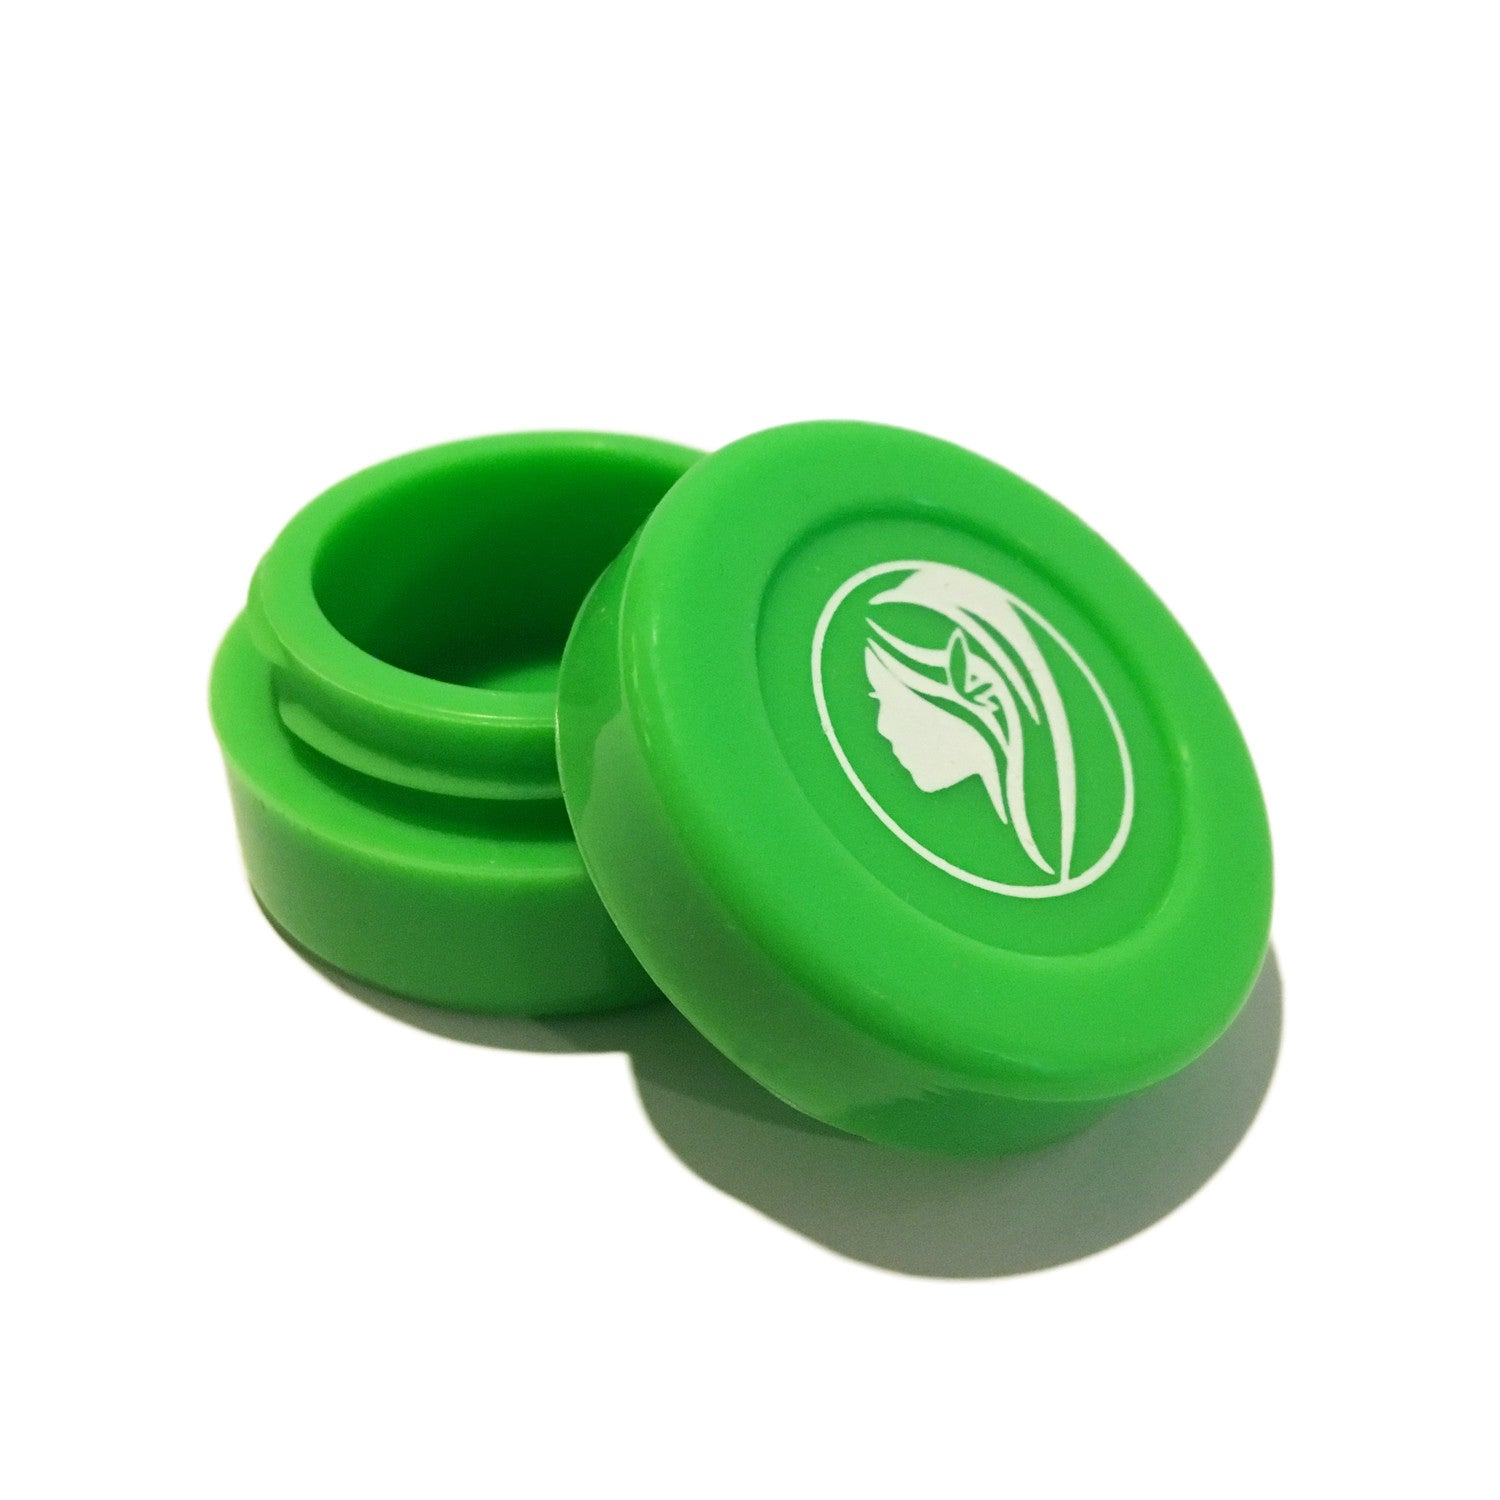 Non-Stick Silicone Wax Jar - Green - Green Goddess Supply